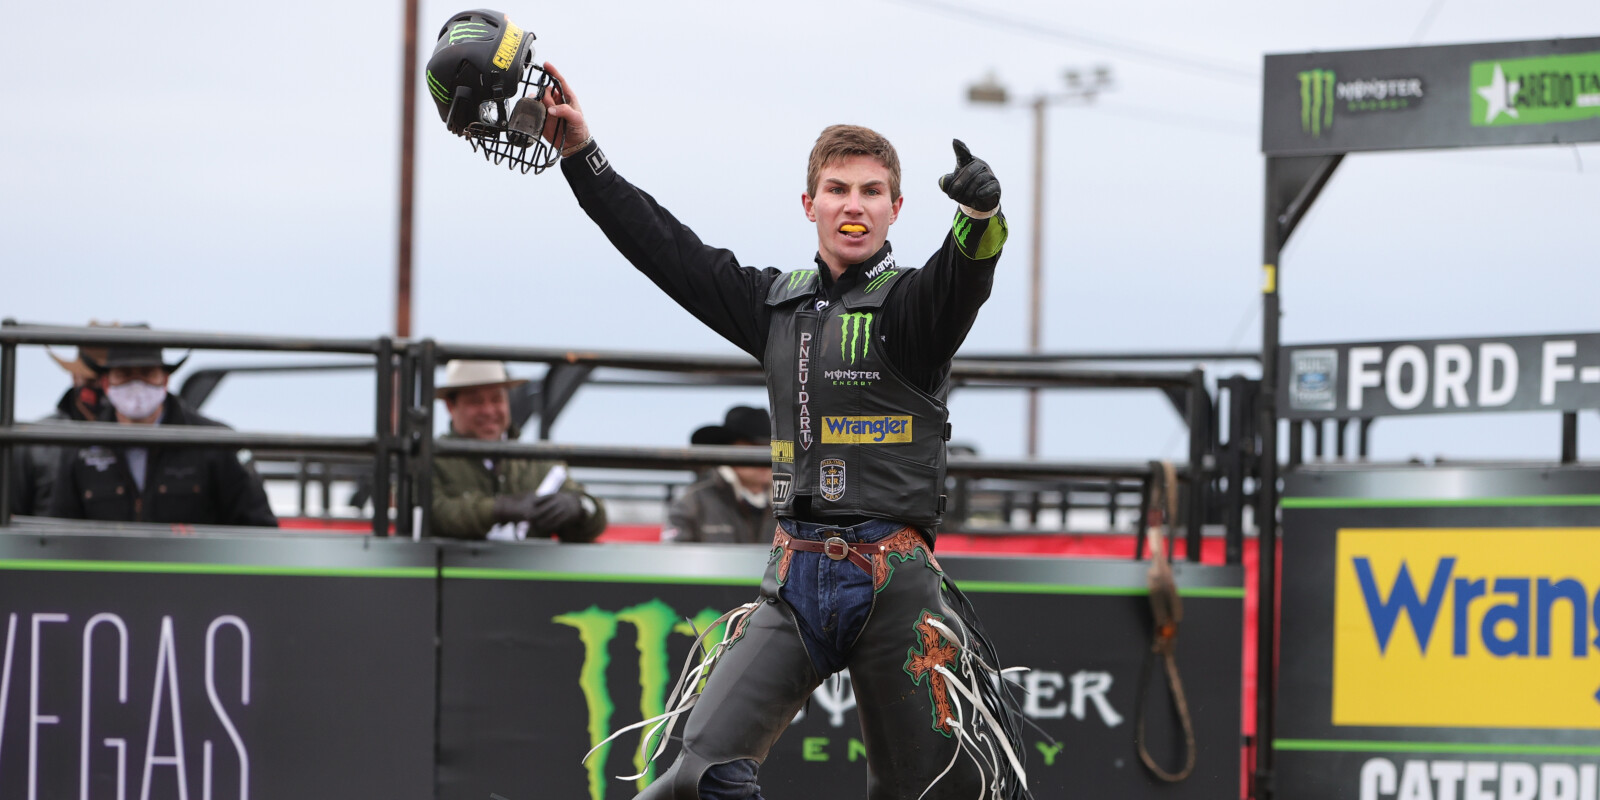 Images from the Del Rio Unleash The Beast PBR